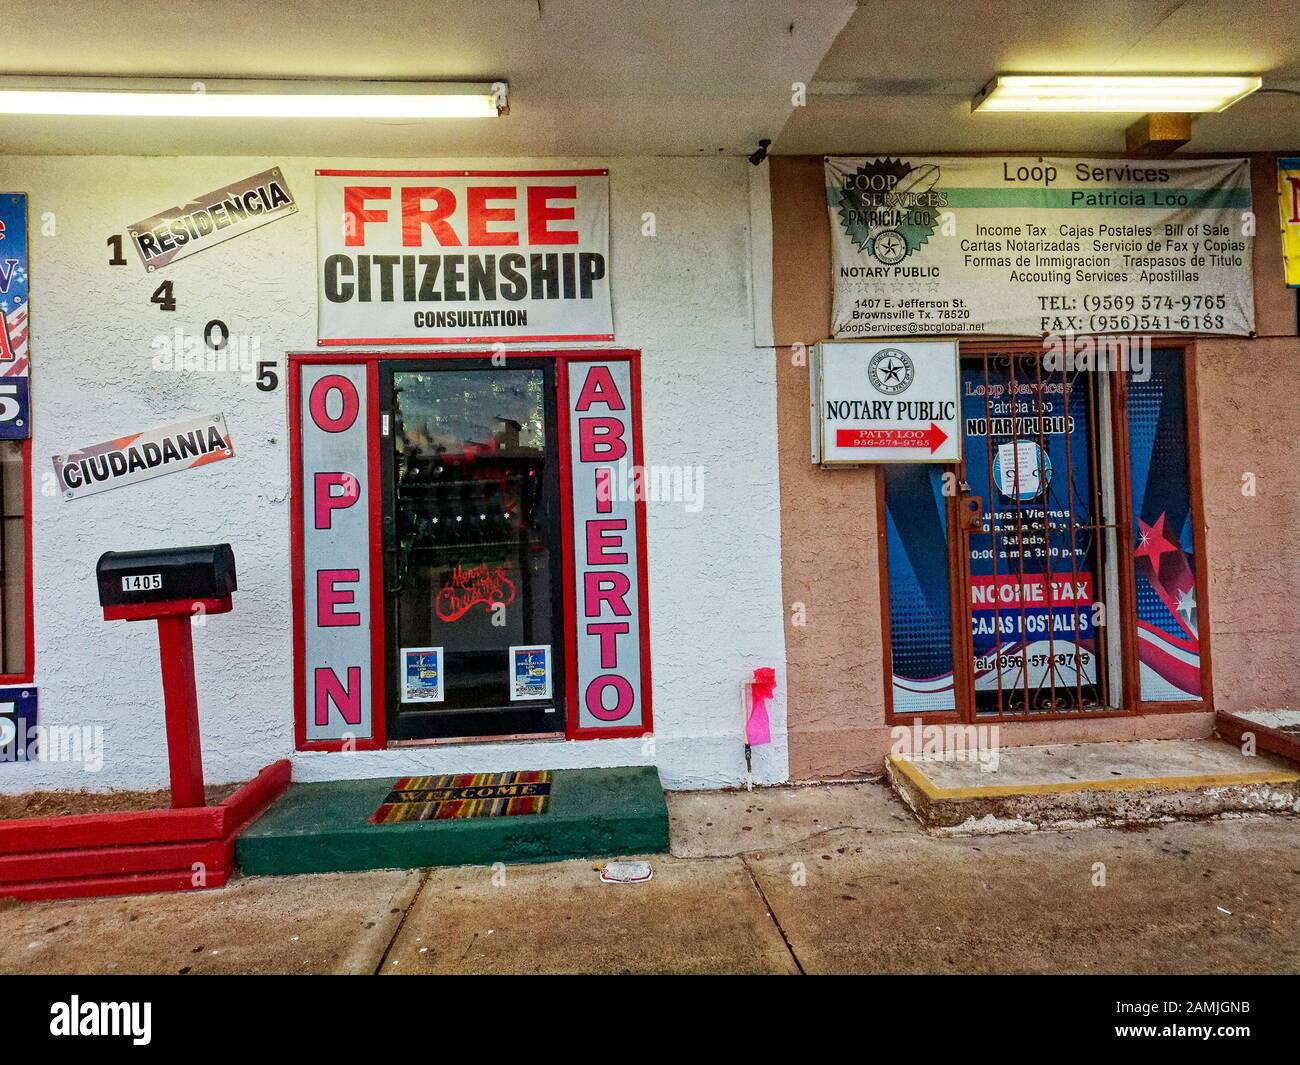 Brownsville, TX, USA-30Dec2019-Across from the bus station, stores serve the needs of residents and visitors along the border between Mexico and the United States. Free Citizenship in large letters, underneath it simply says counseling. Bilingual signs in Spanish and English Stock Photo